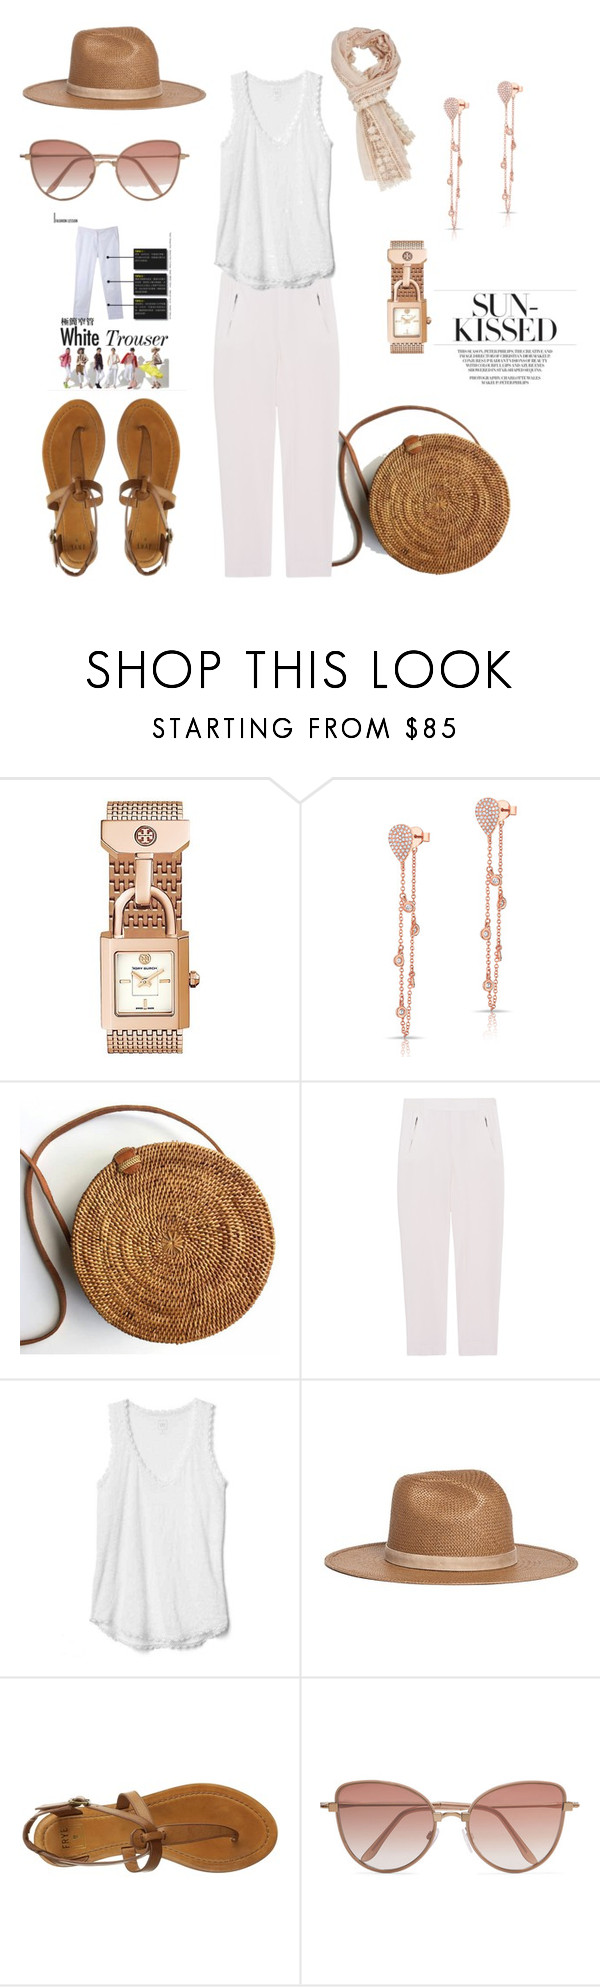 """""""Natural beauty"""" by closet-freak ❤ liked on Polyvore featuring Anne Sisteron, Steffen Schraut, Janessa Leone, Frye, Cutler and Gross, whitetrouser and WhiteCami"""